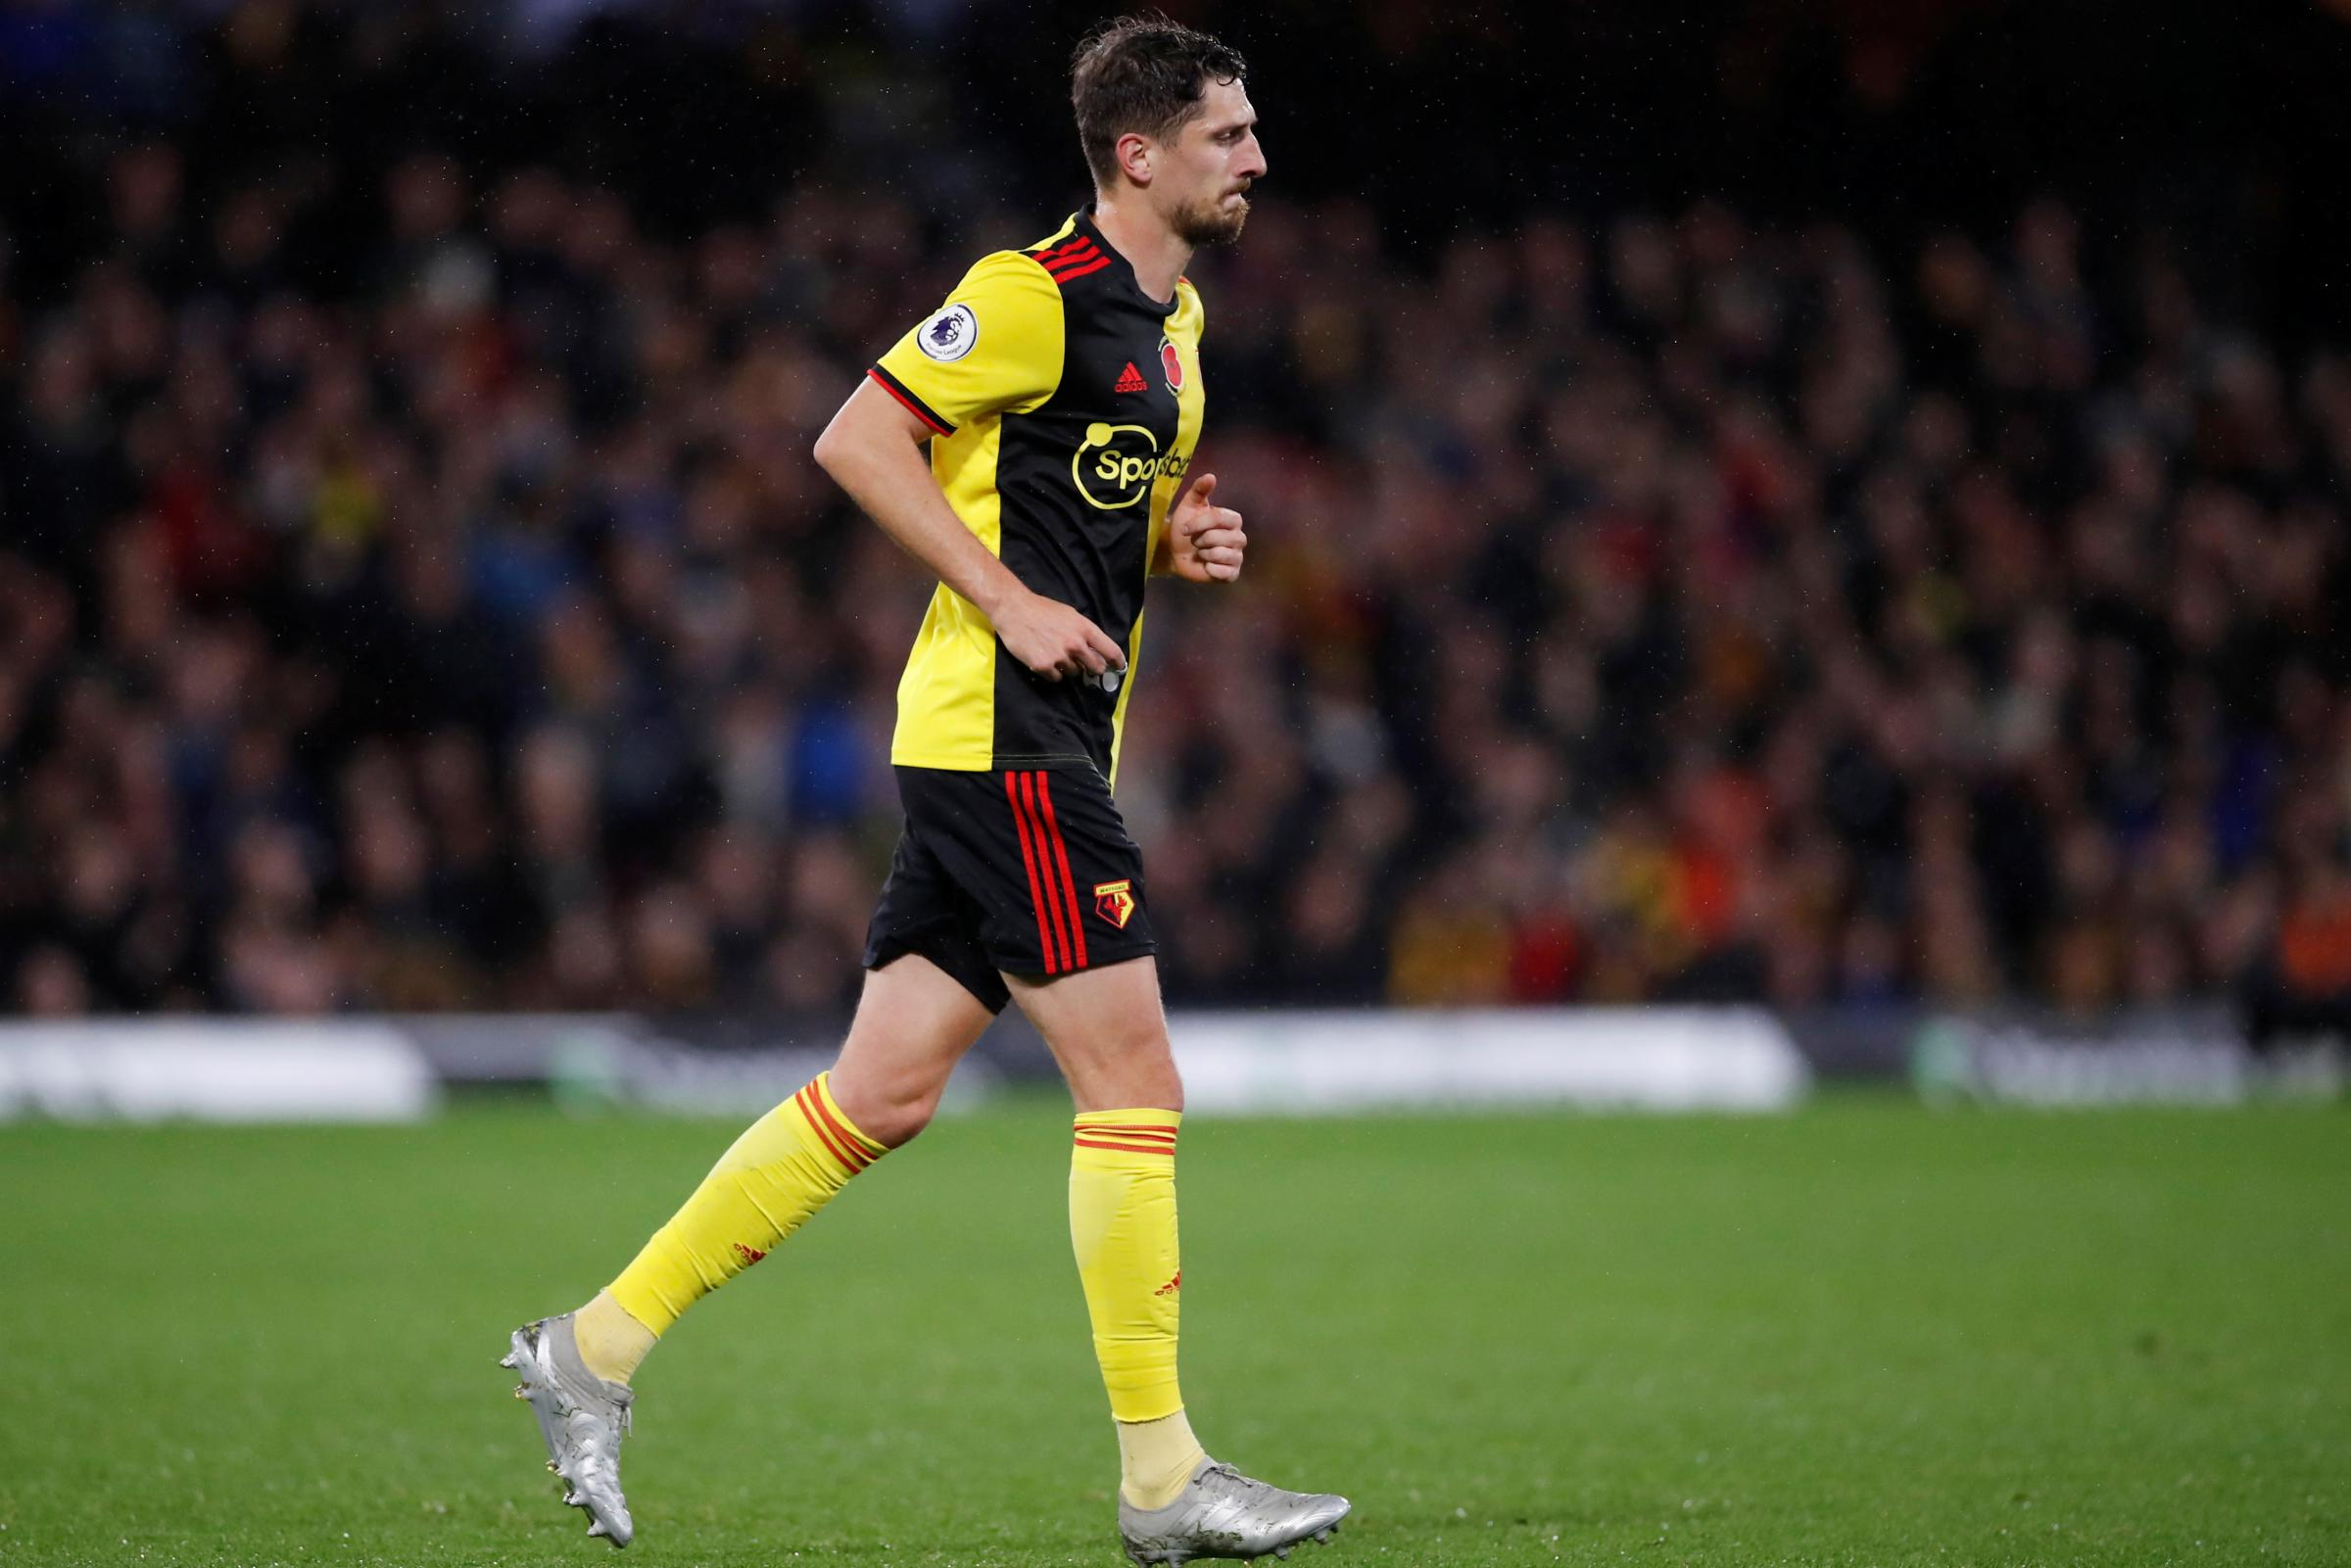 Craig Cathcart suffered back spasm in Watford's defeat to Chelsea, Quique Sanchez Flores claims